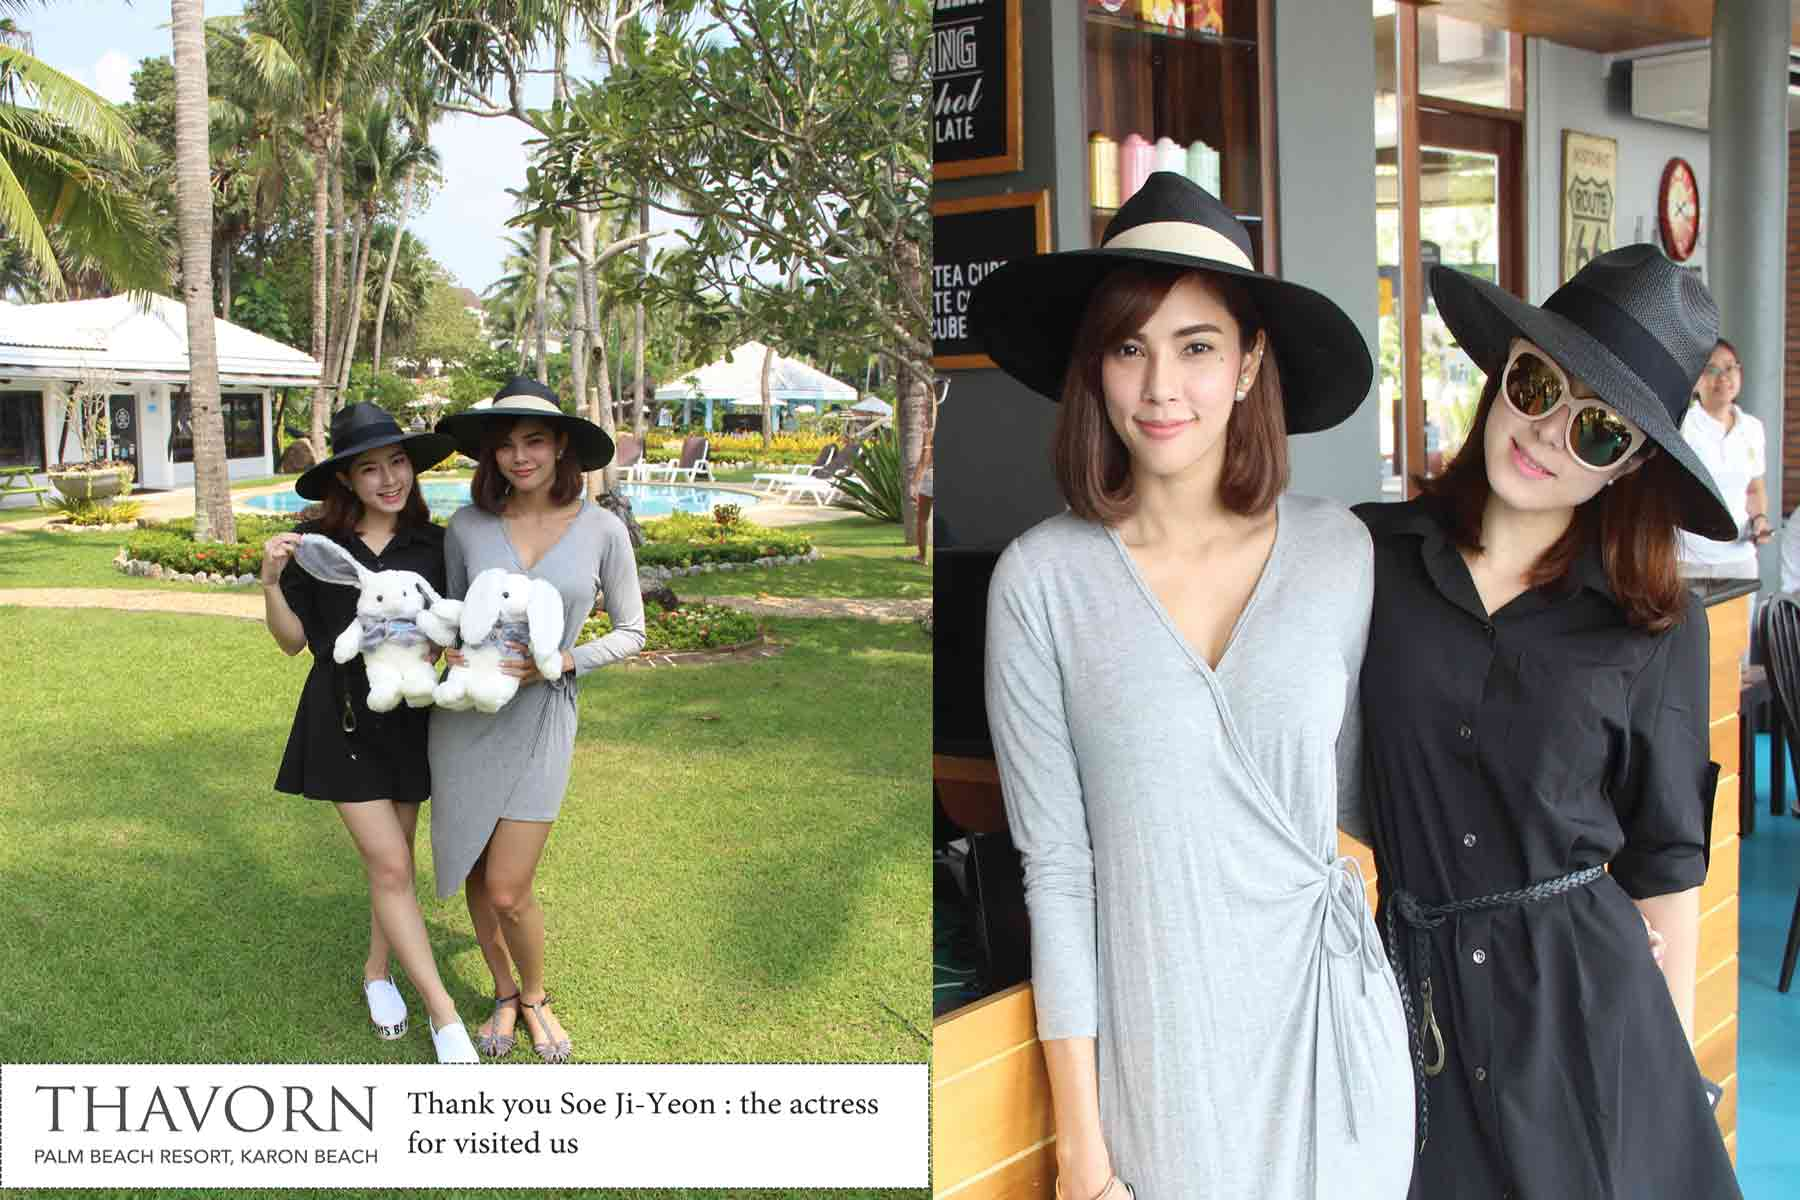 Seo Ji-yeon, Thavorn Palm Beach Resort